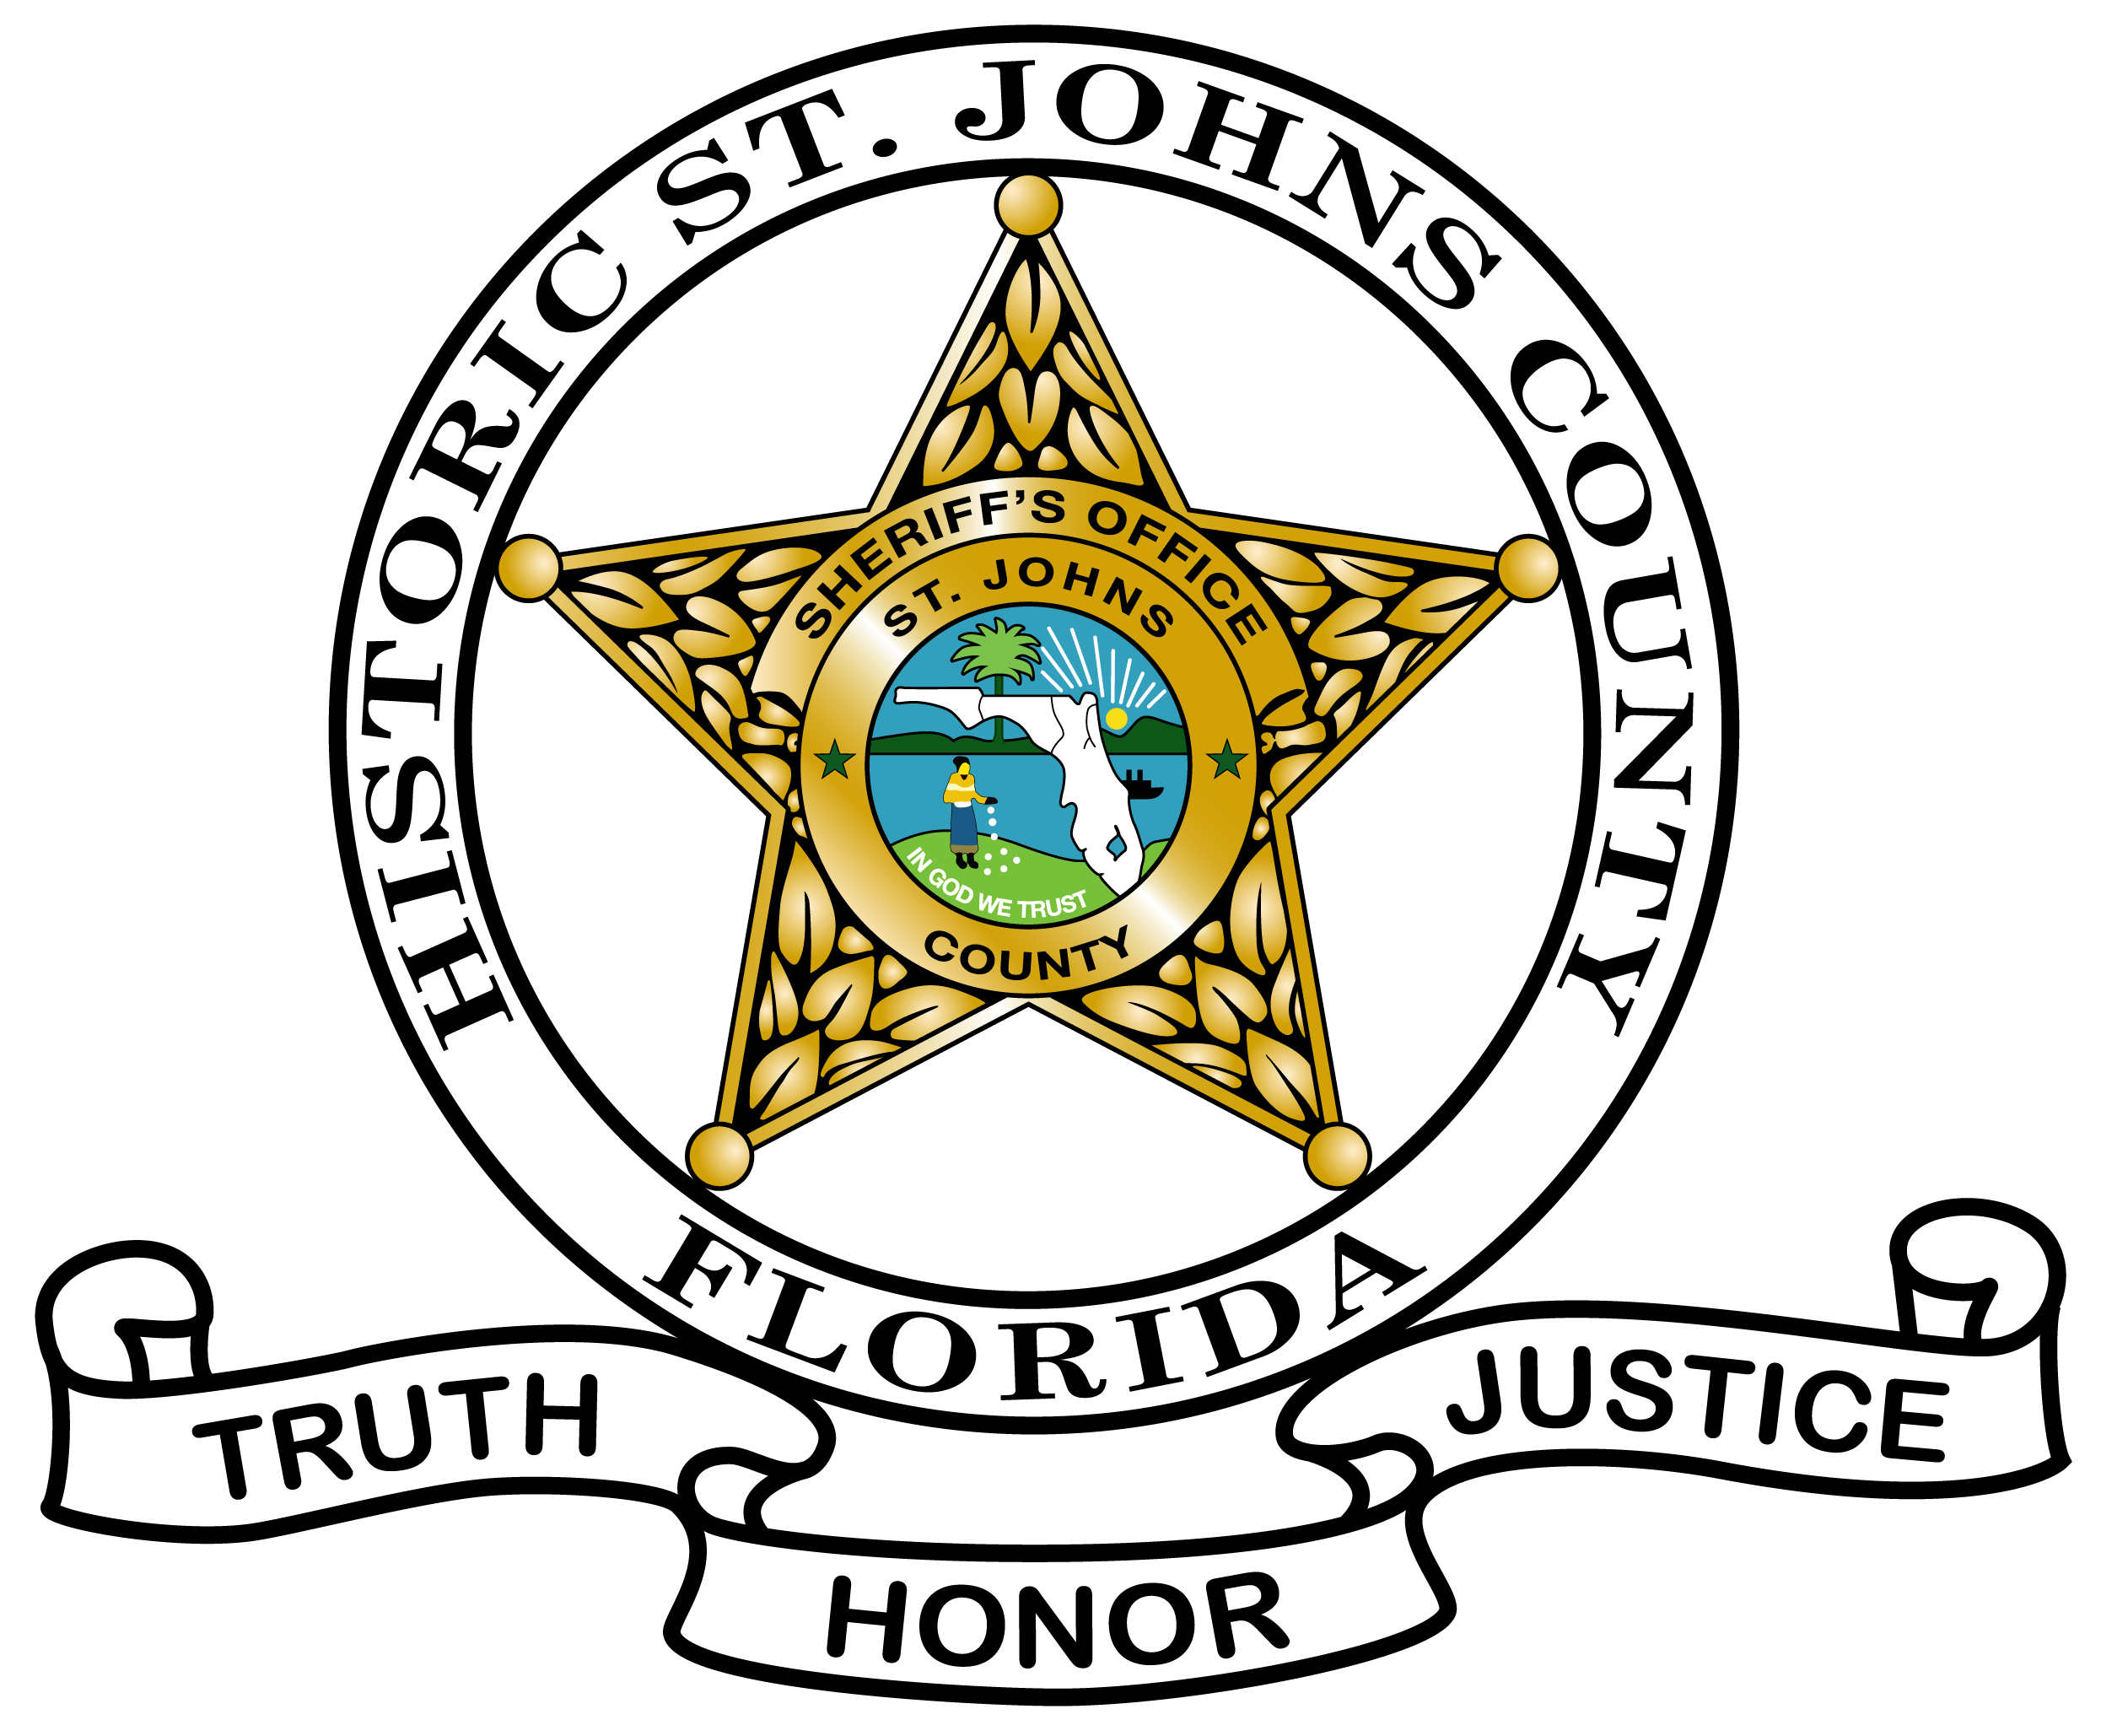 St. Johns County Sheriff